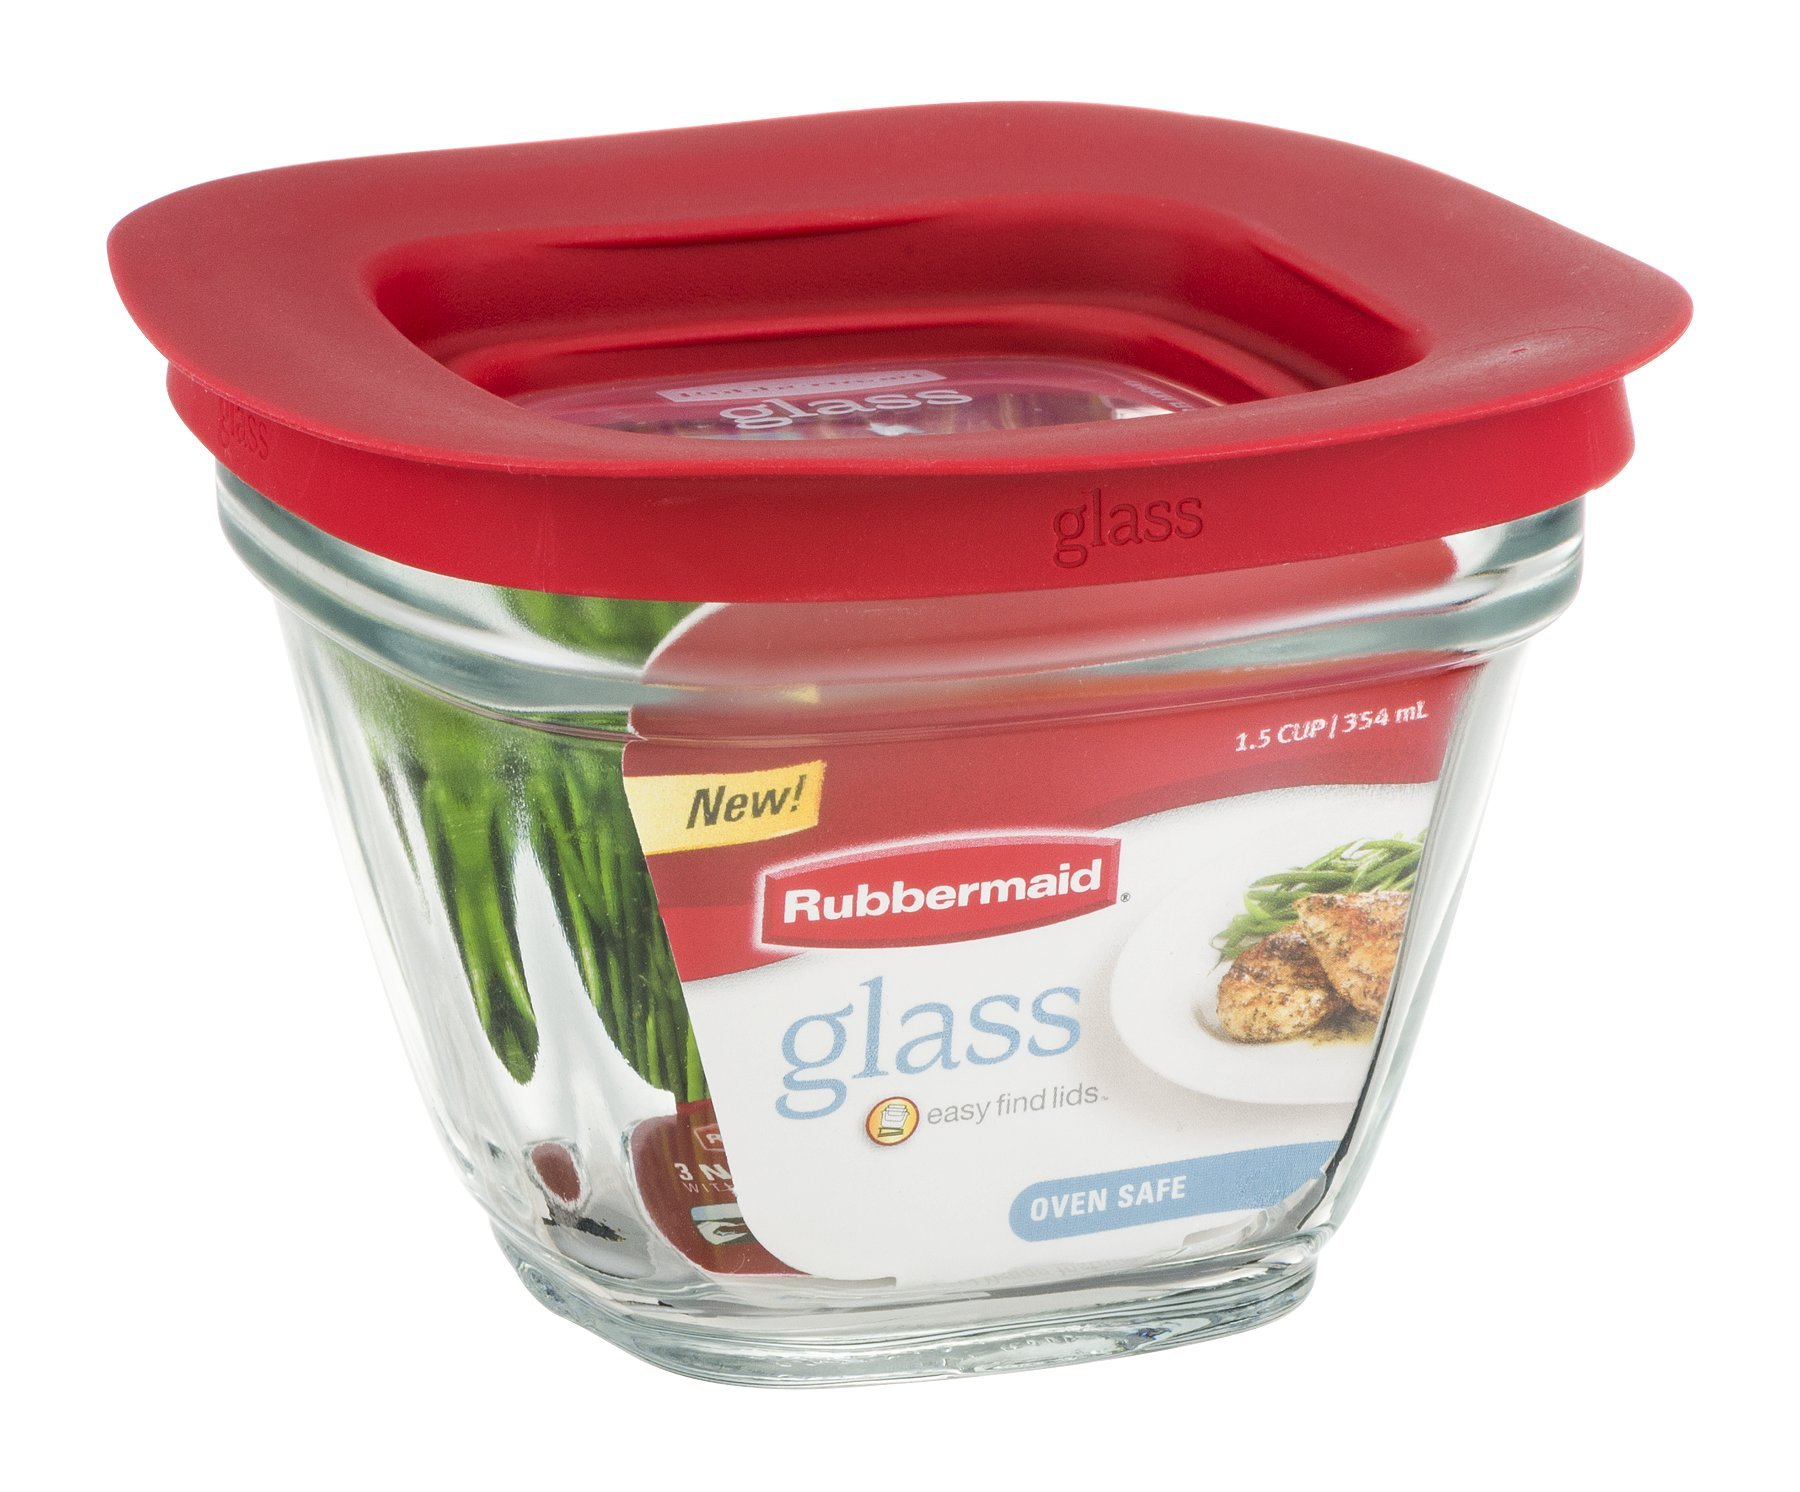 Rubbermaid Food Storage Container Freezer, Glass 1.5 Cup Square by Rubbermaid